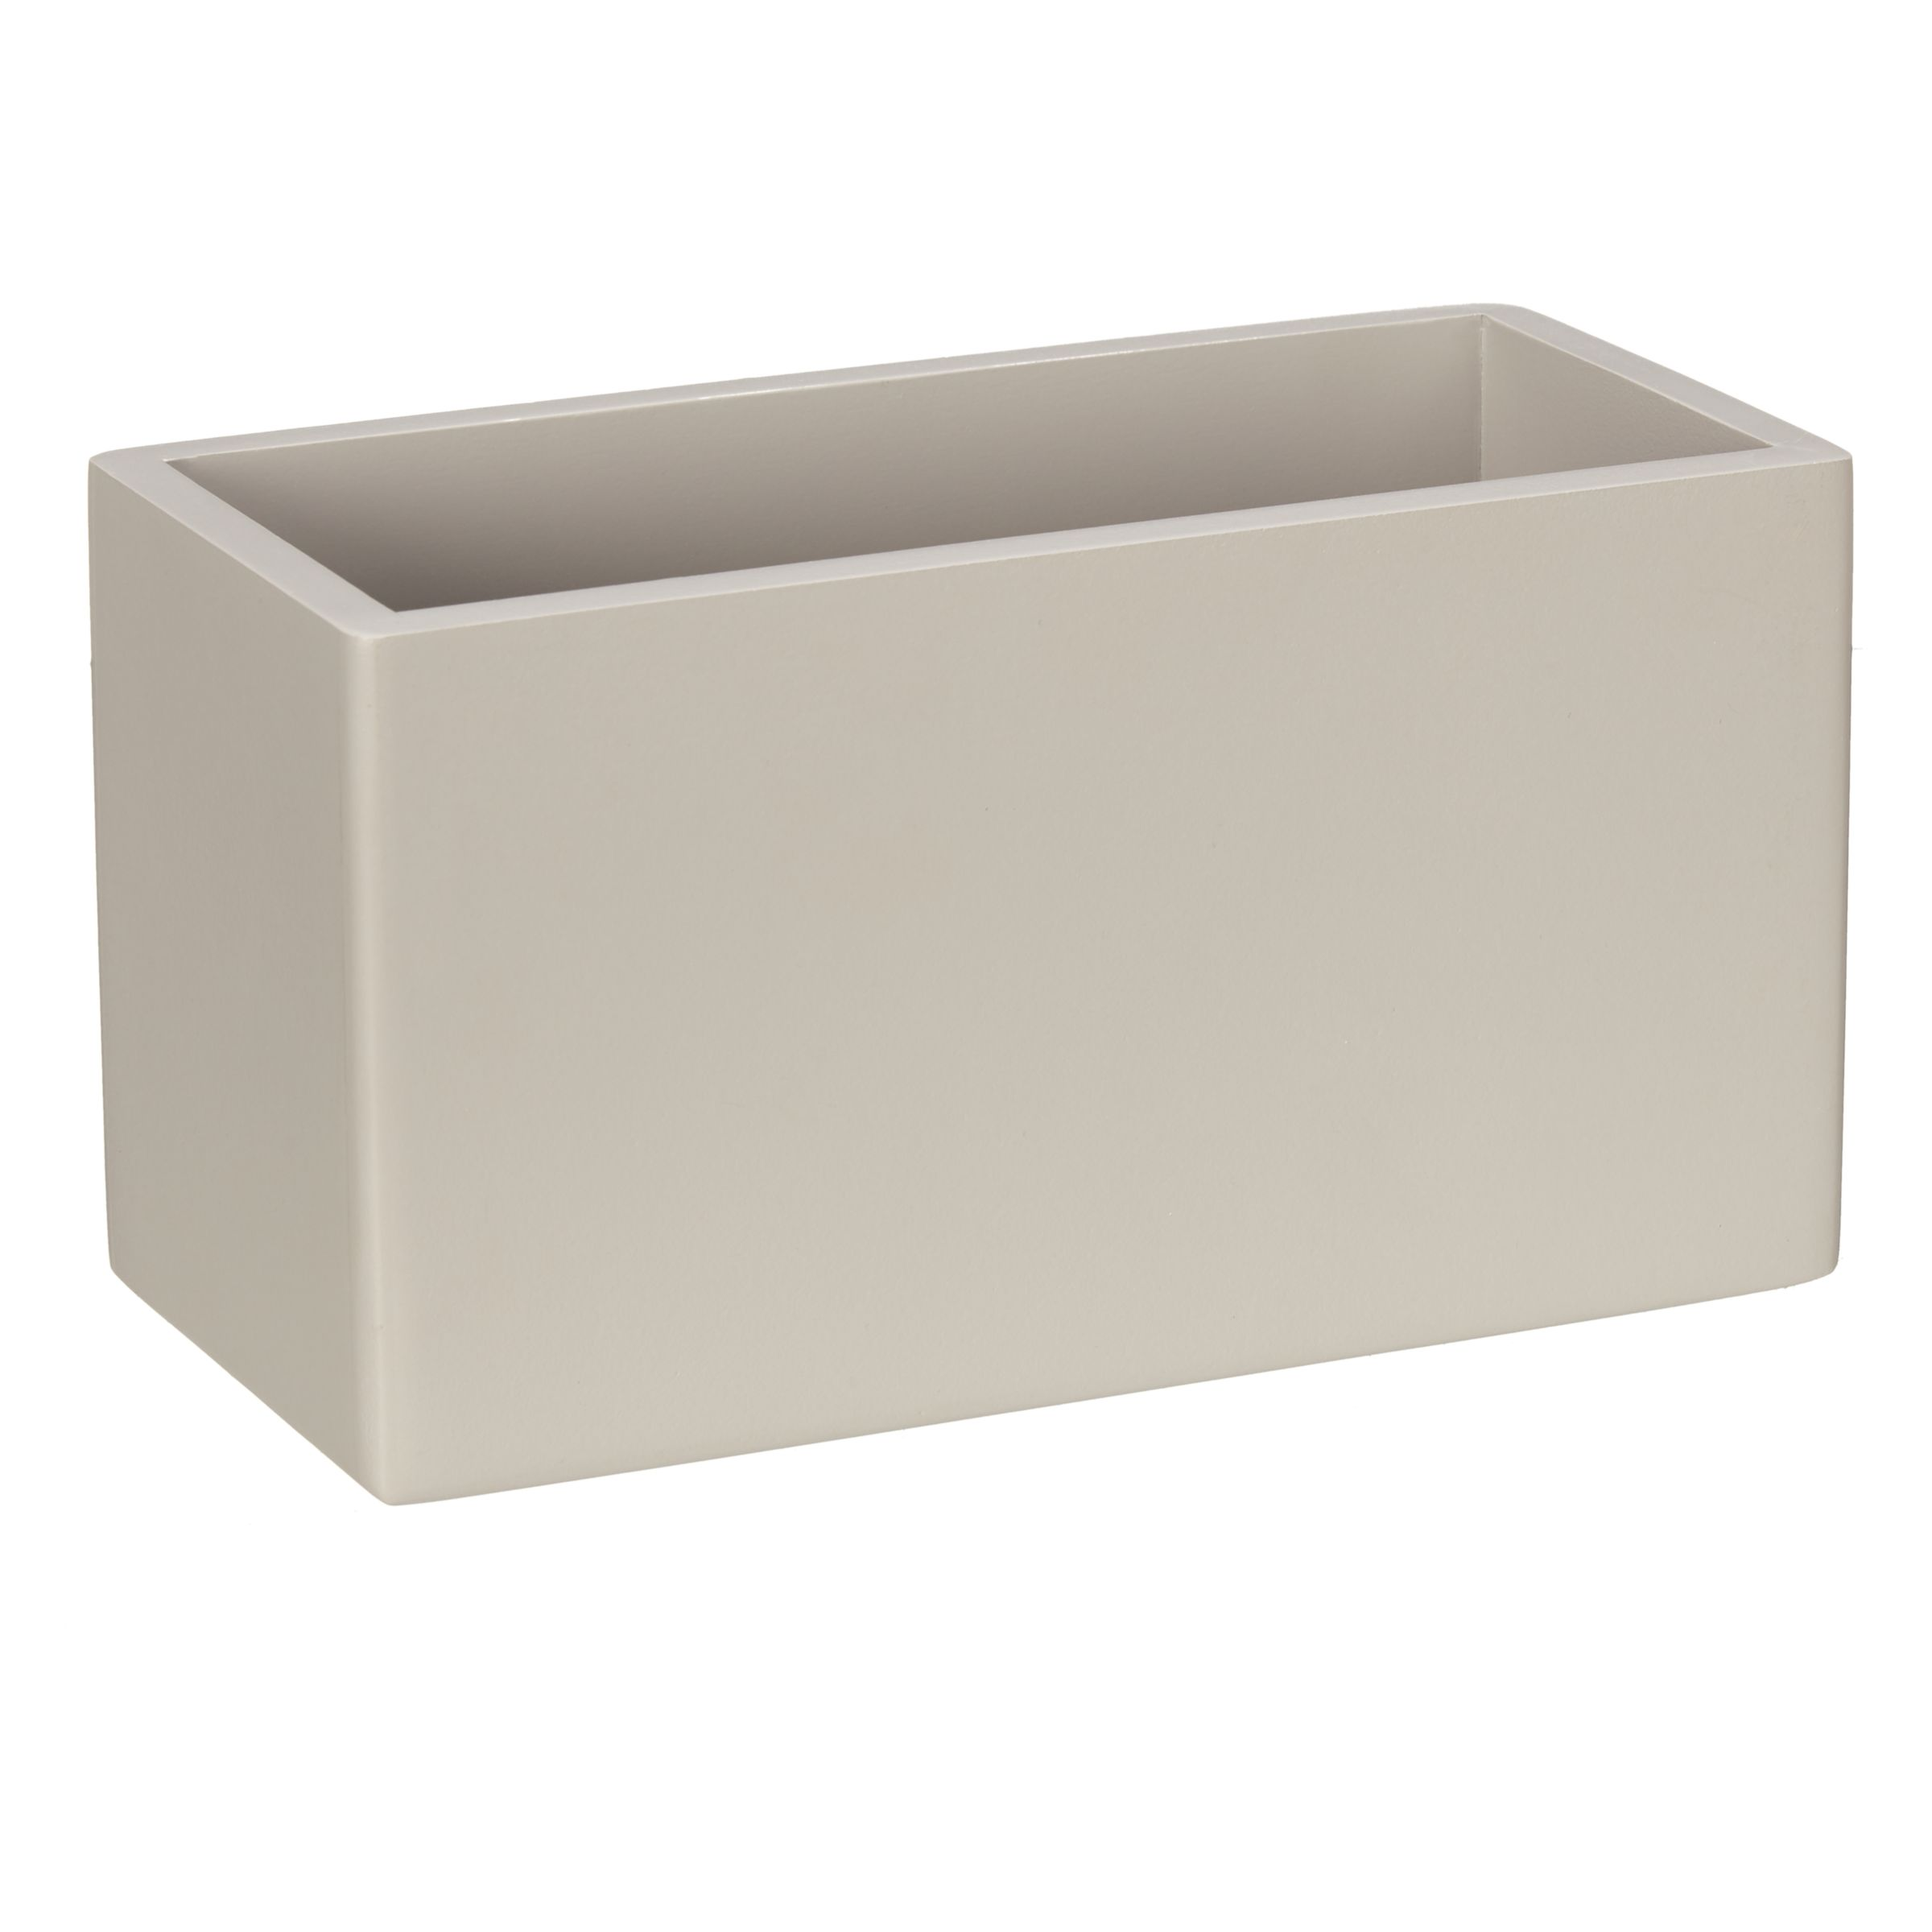 House by john lewis bathroom storage box small for Bathroom storage ideas john lewis